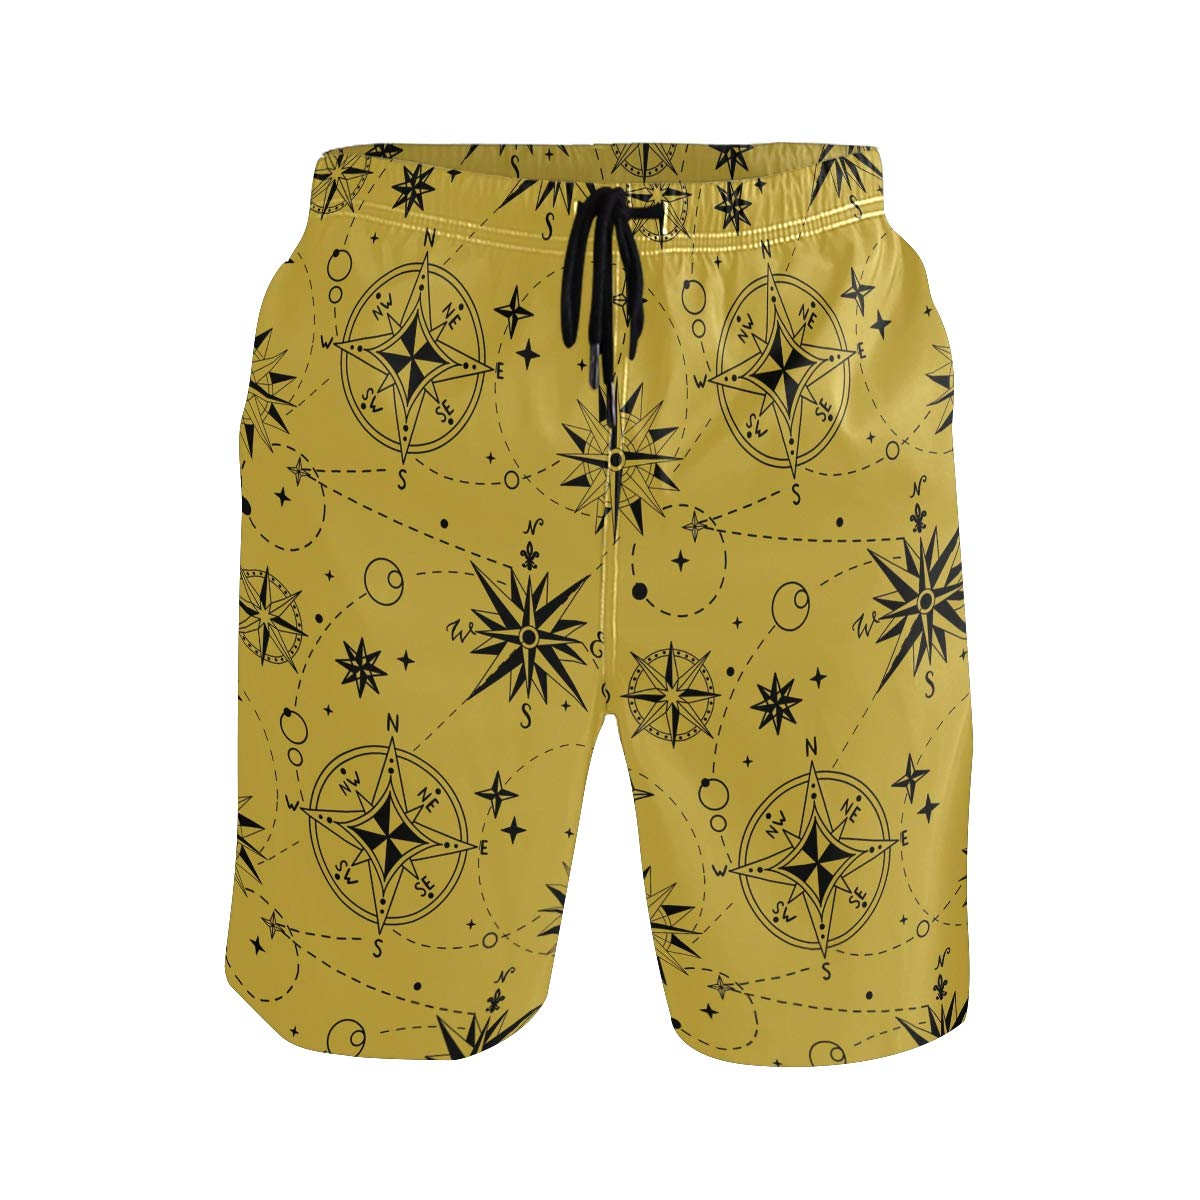 JERECY Mens Swim Trunks Nautical Compass Pattern Quick Dry Board Shorts with Drawstring and Pockets